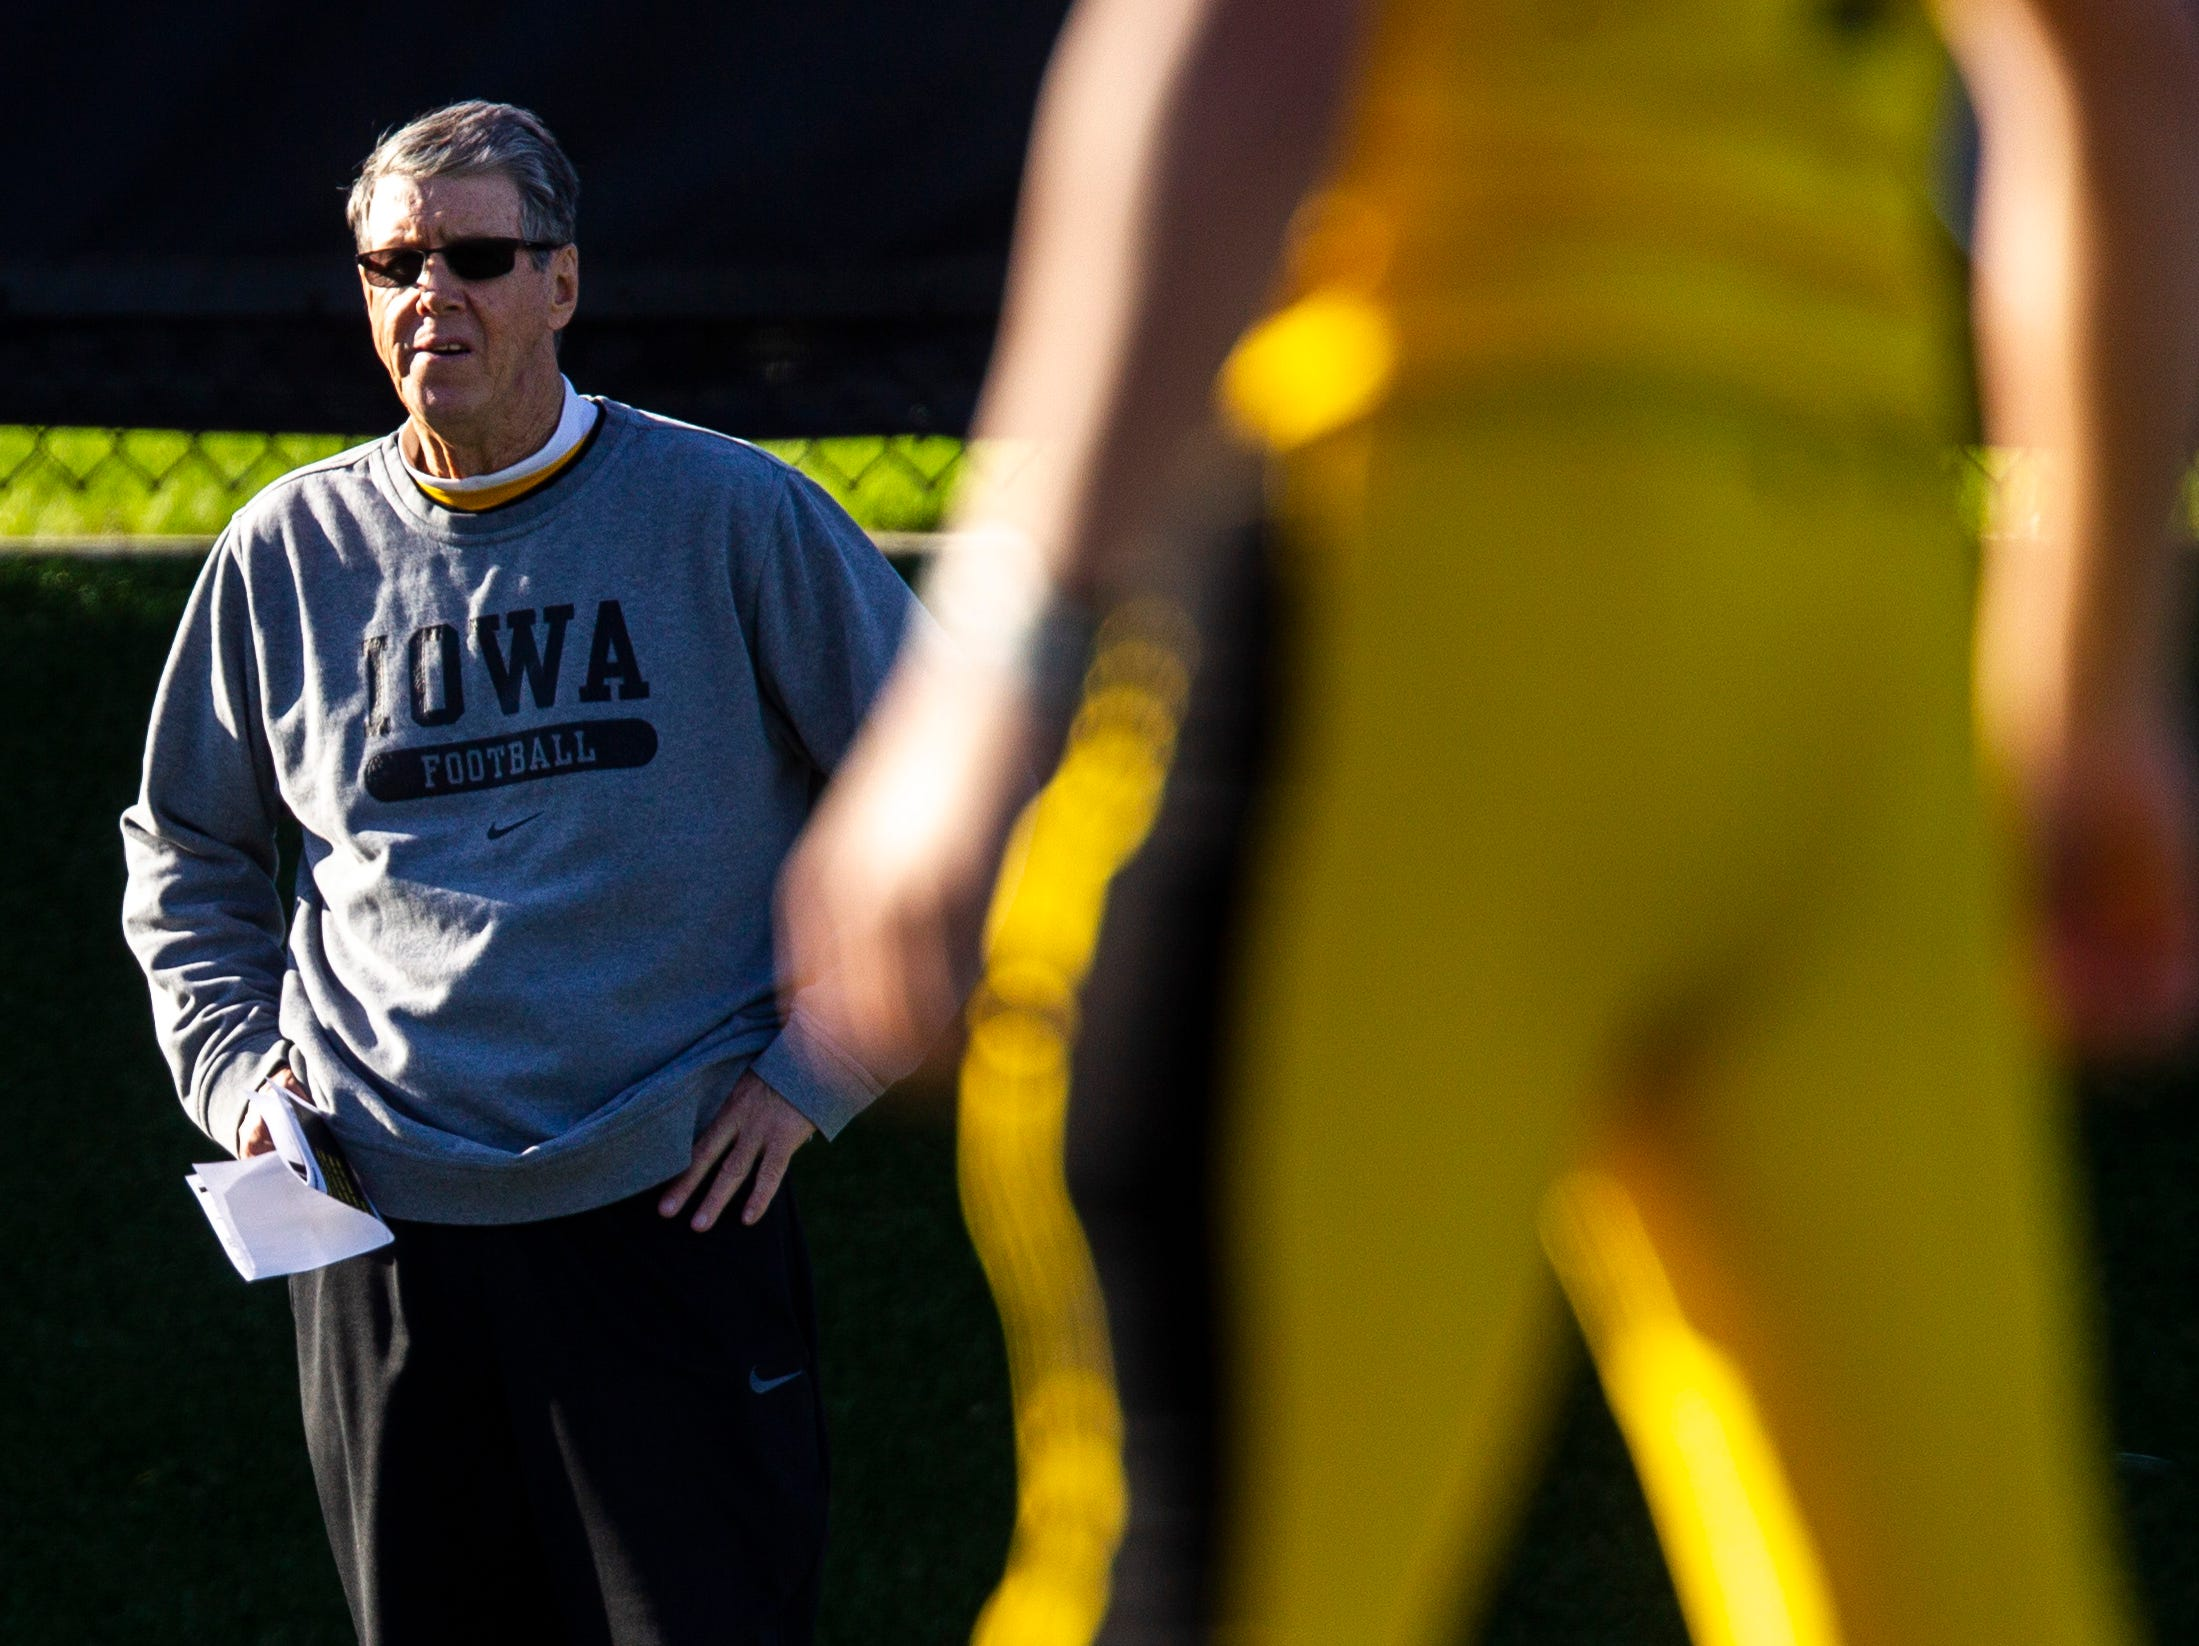 Iowa quarterbacks coach Ken O'Keefe looks on during the final spring football practice, Friday, April 26, 2019, at the University of Iowa outdoor practice facility in Iowa City, Iowa.